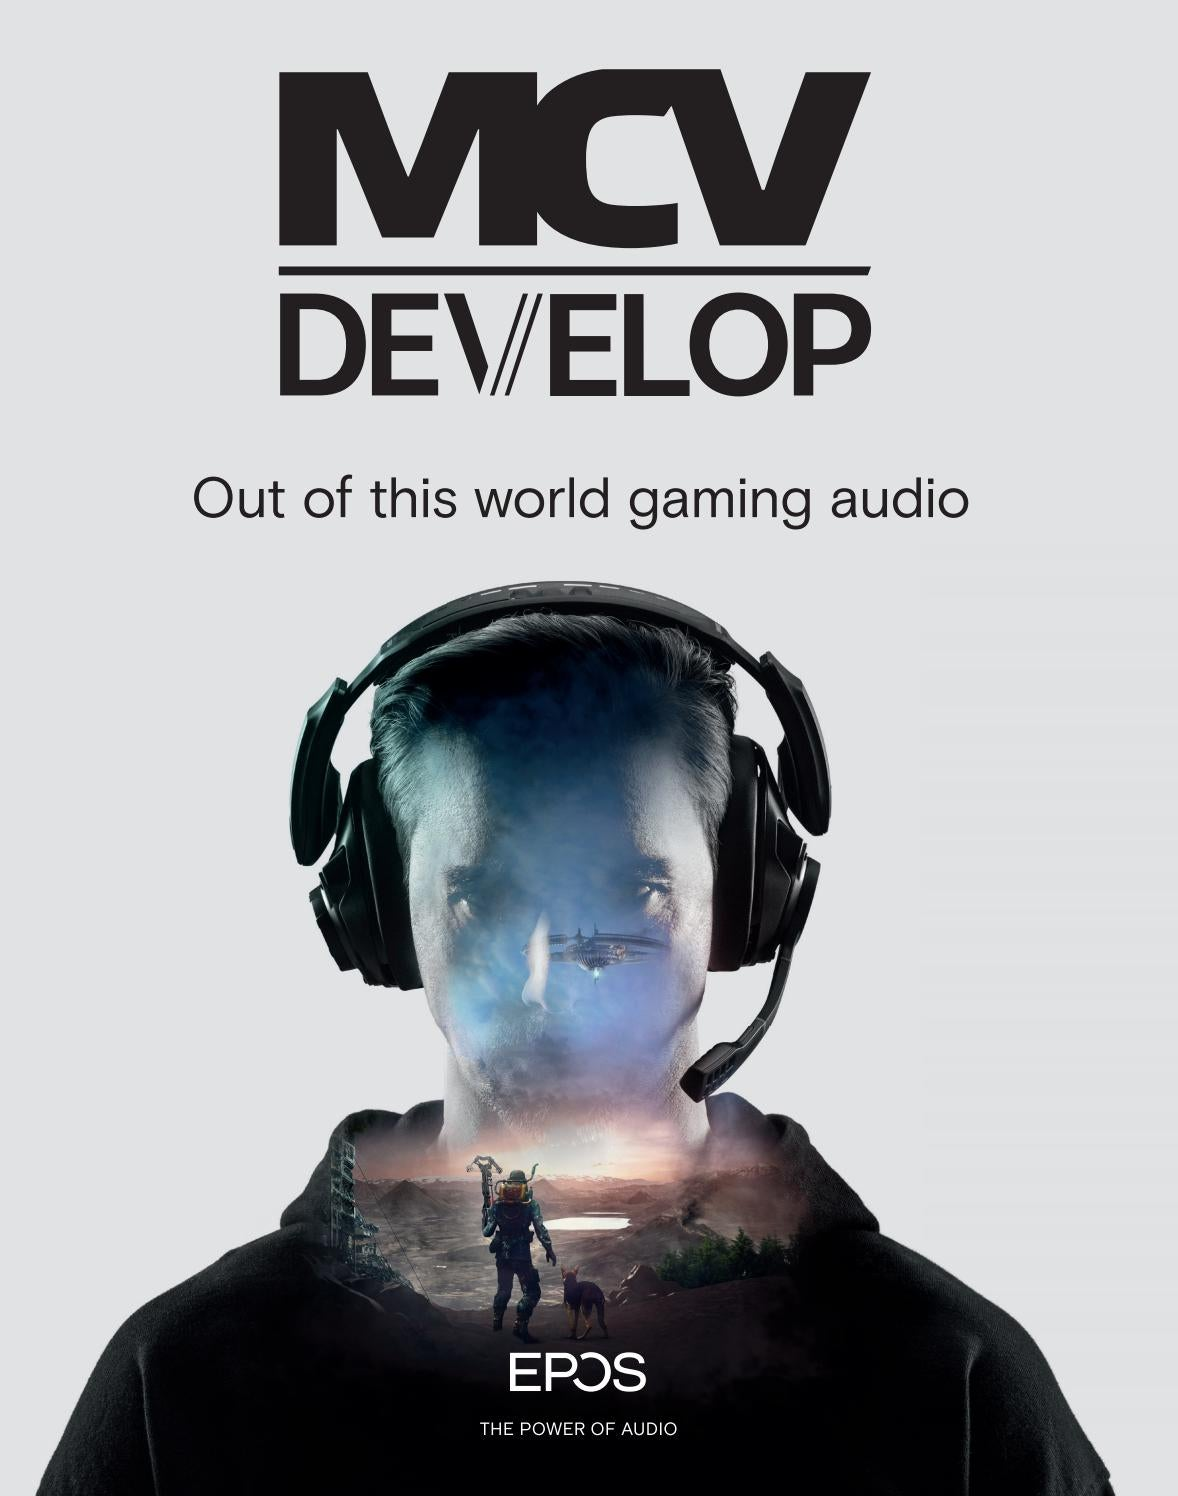 Mcv Develop 959 July 2020 By Biz Media Ltd Issuu